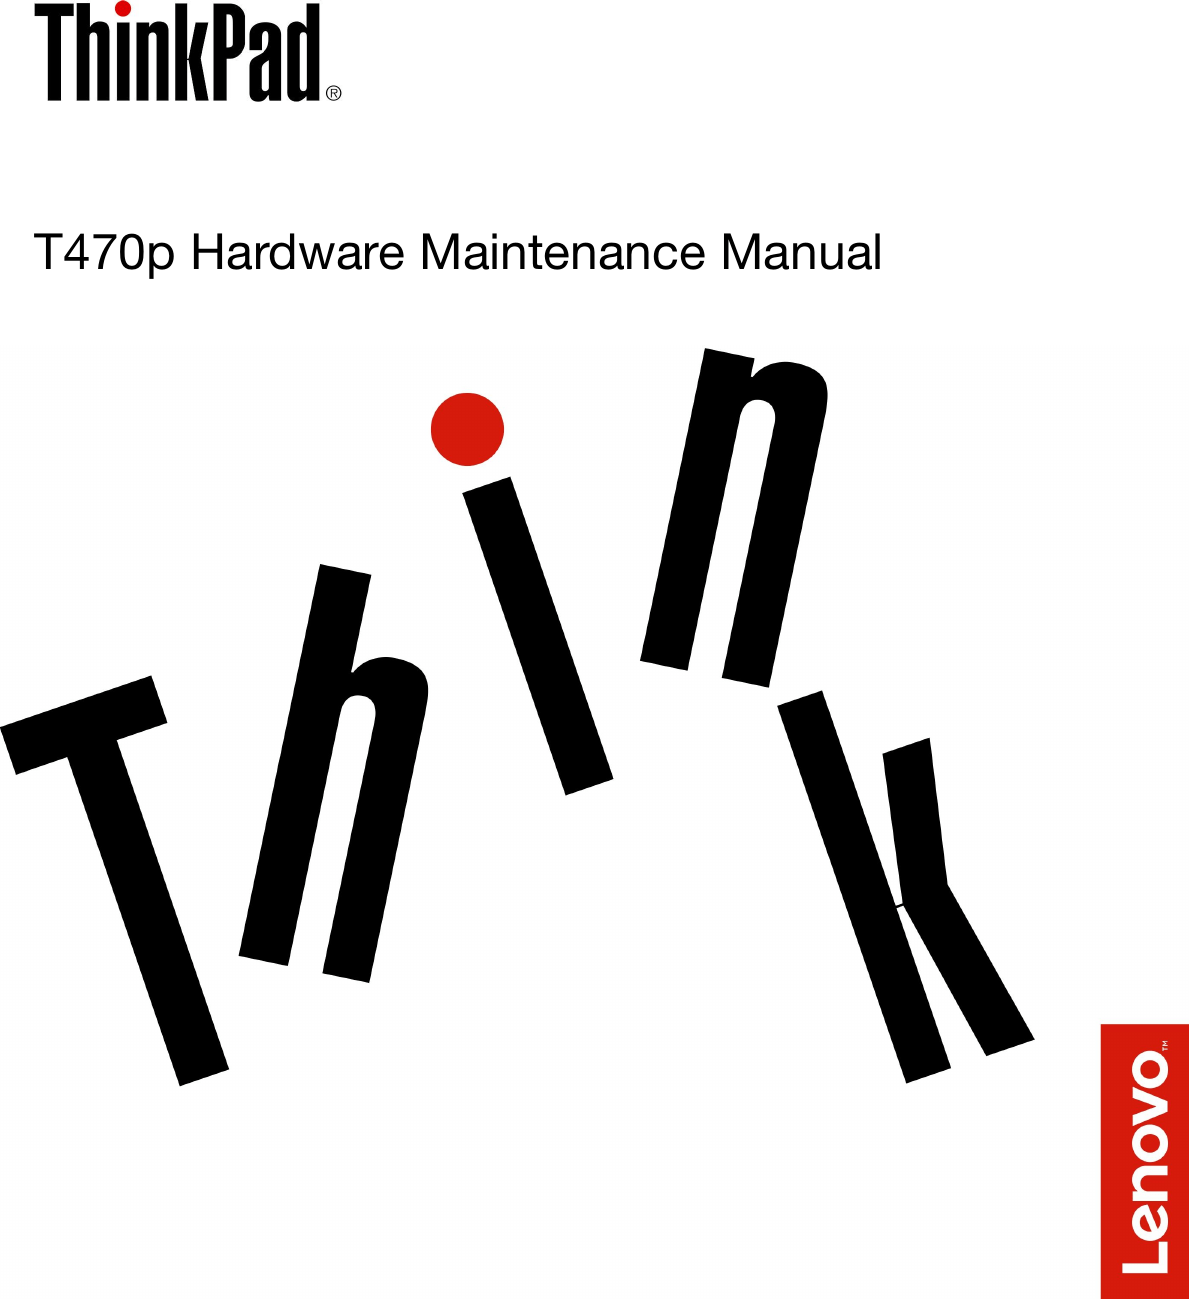 Lenovo T470p Hmm En Sp40m 02 User Manual Hardware